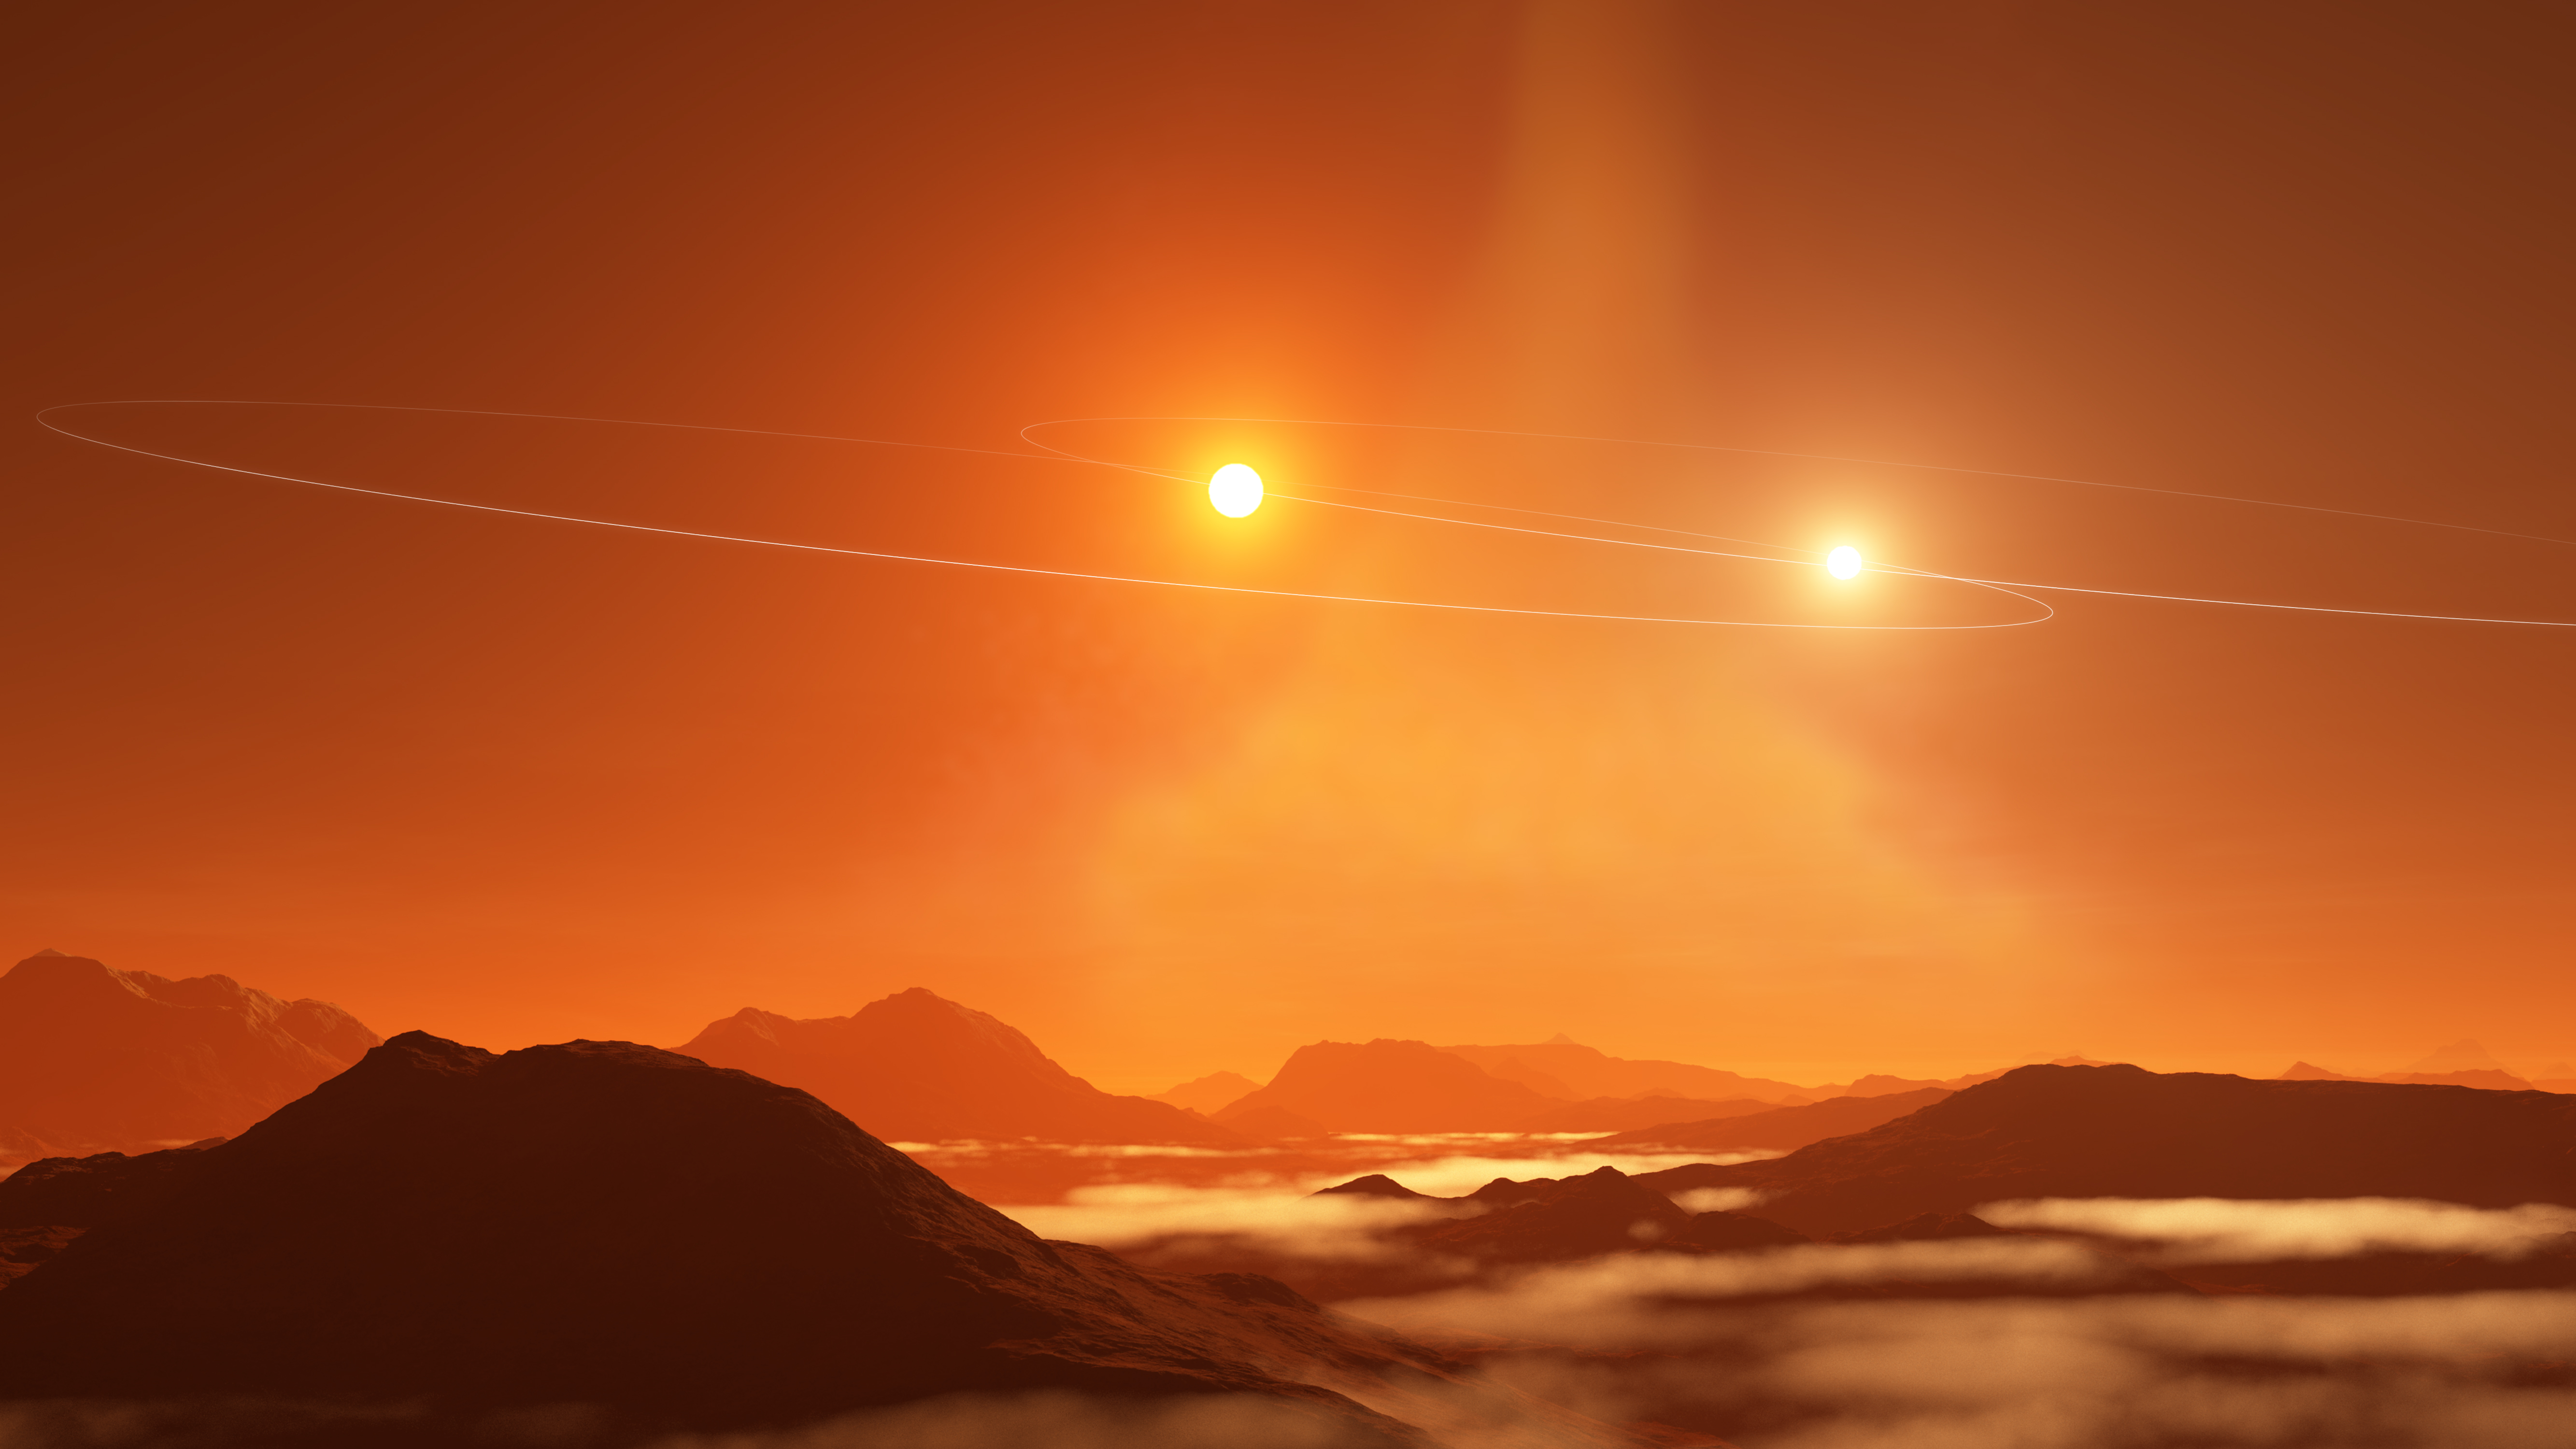 Double Sunset on a 'Tatooine' Exoplanet